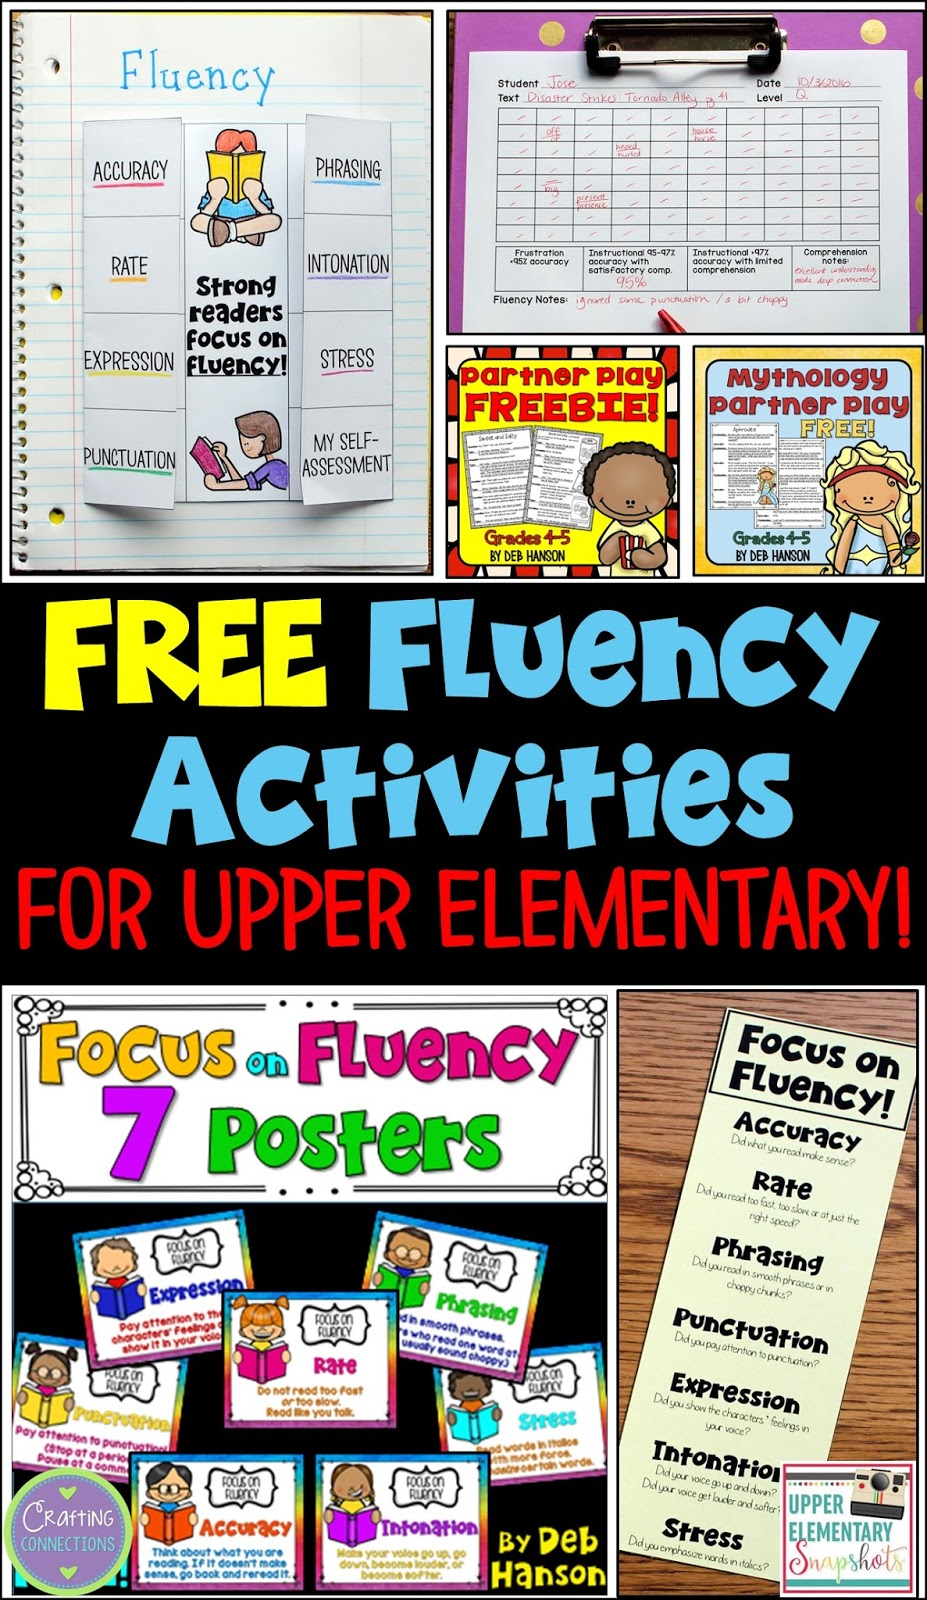 photograph about Printable Reading Fluency Games called Concentrating upon Fluency within the Higher Essential Clroom